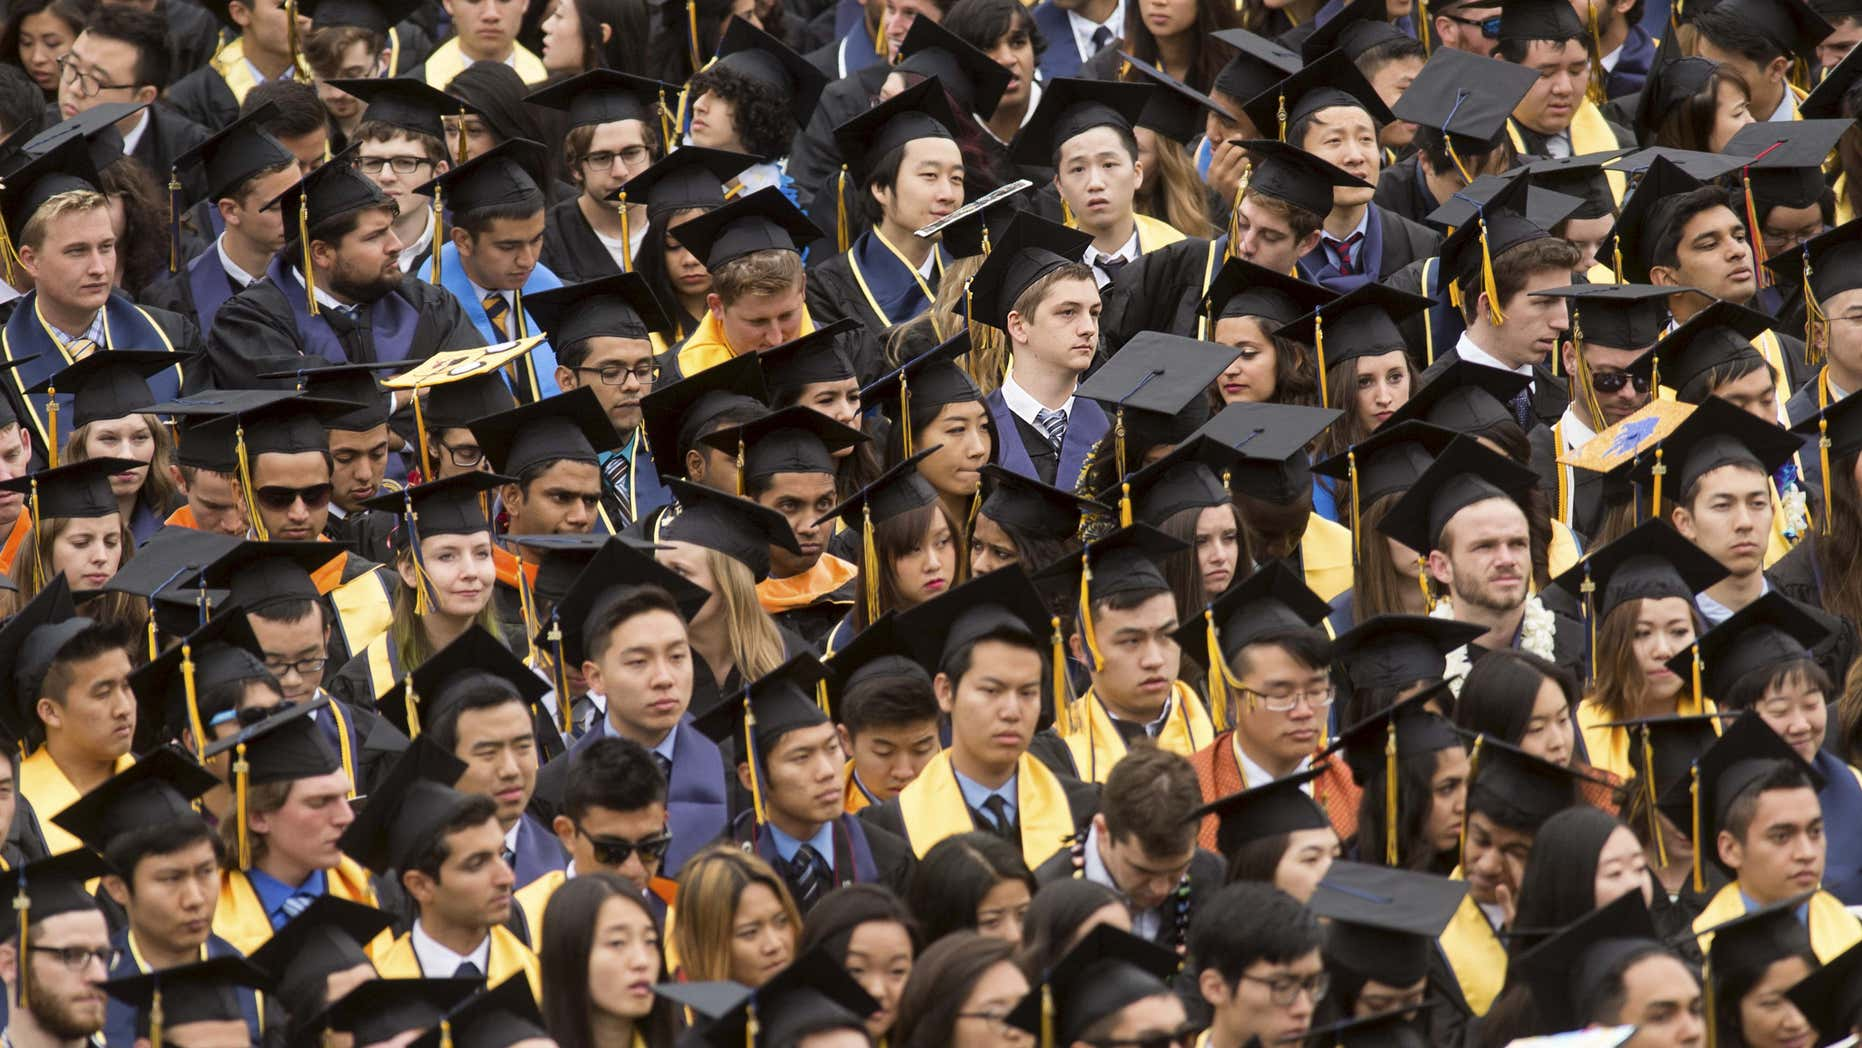 Graduates attend commencement at University of California, Berkeley in Berkeley.